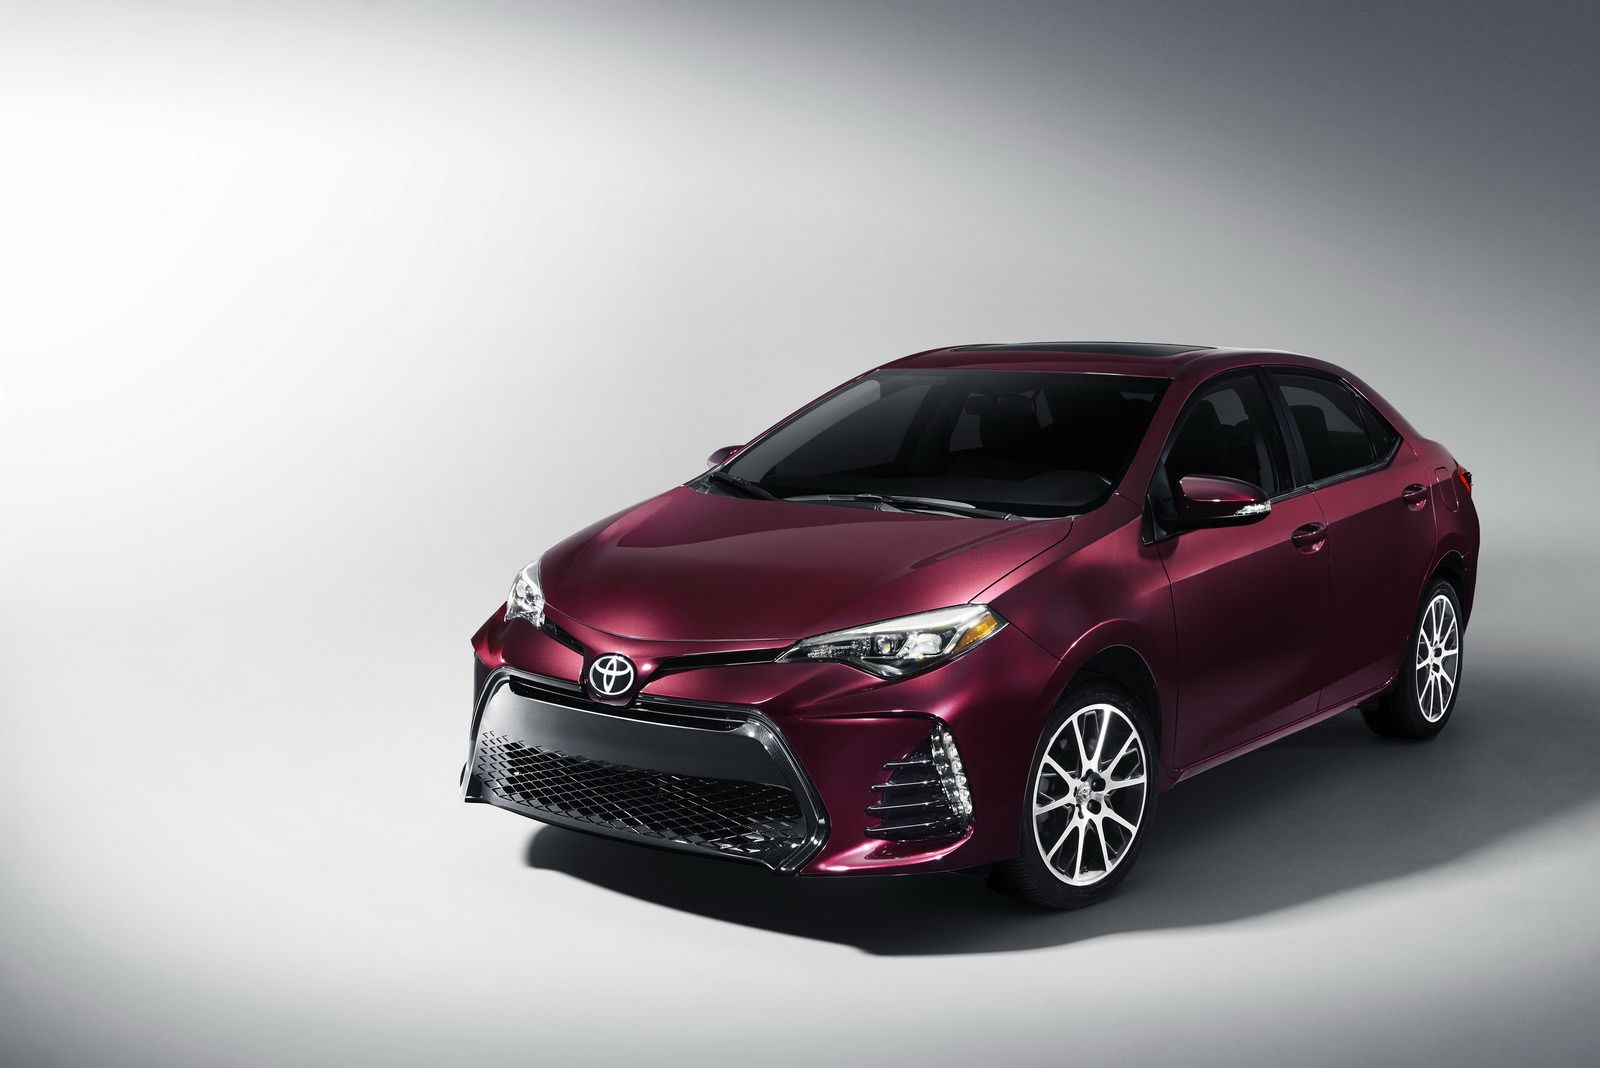 Best 20 corolla price ideas on pinterest toyota corolla 2016 toyota corolla price and 2016 toyota corolla s